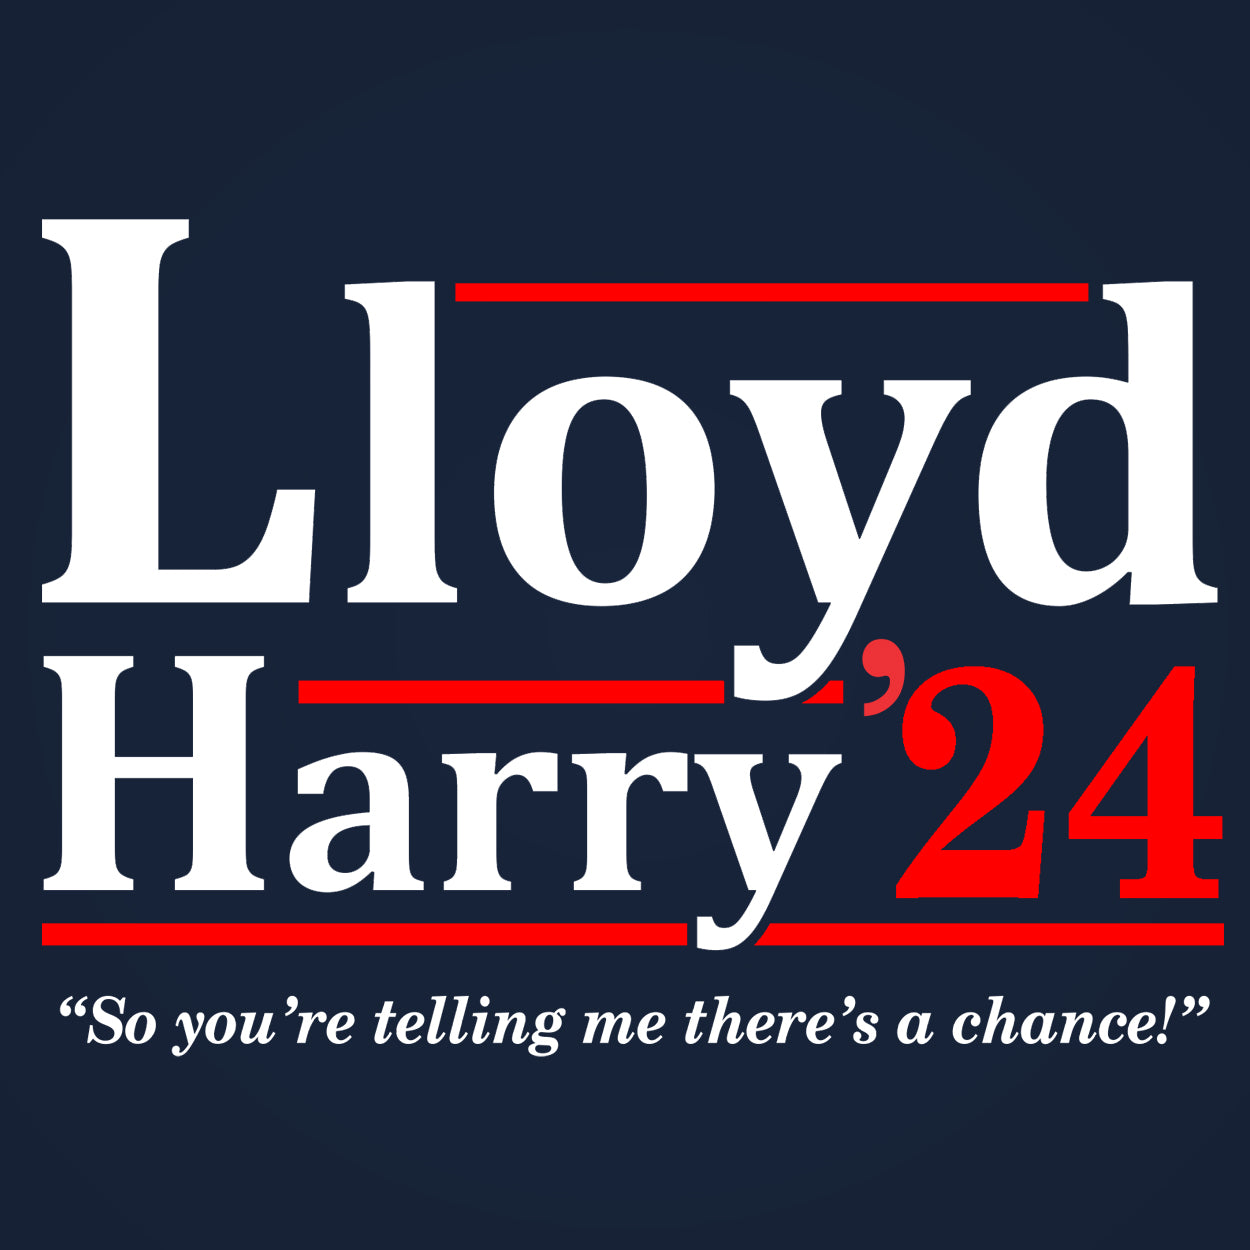 Lloyd and Harry 2020 Election - DonkeyTees